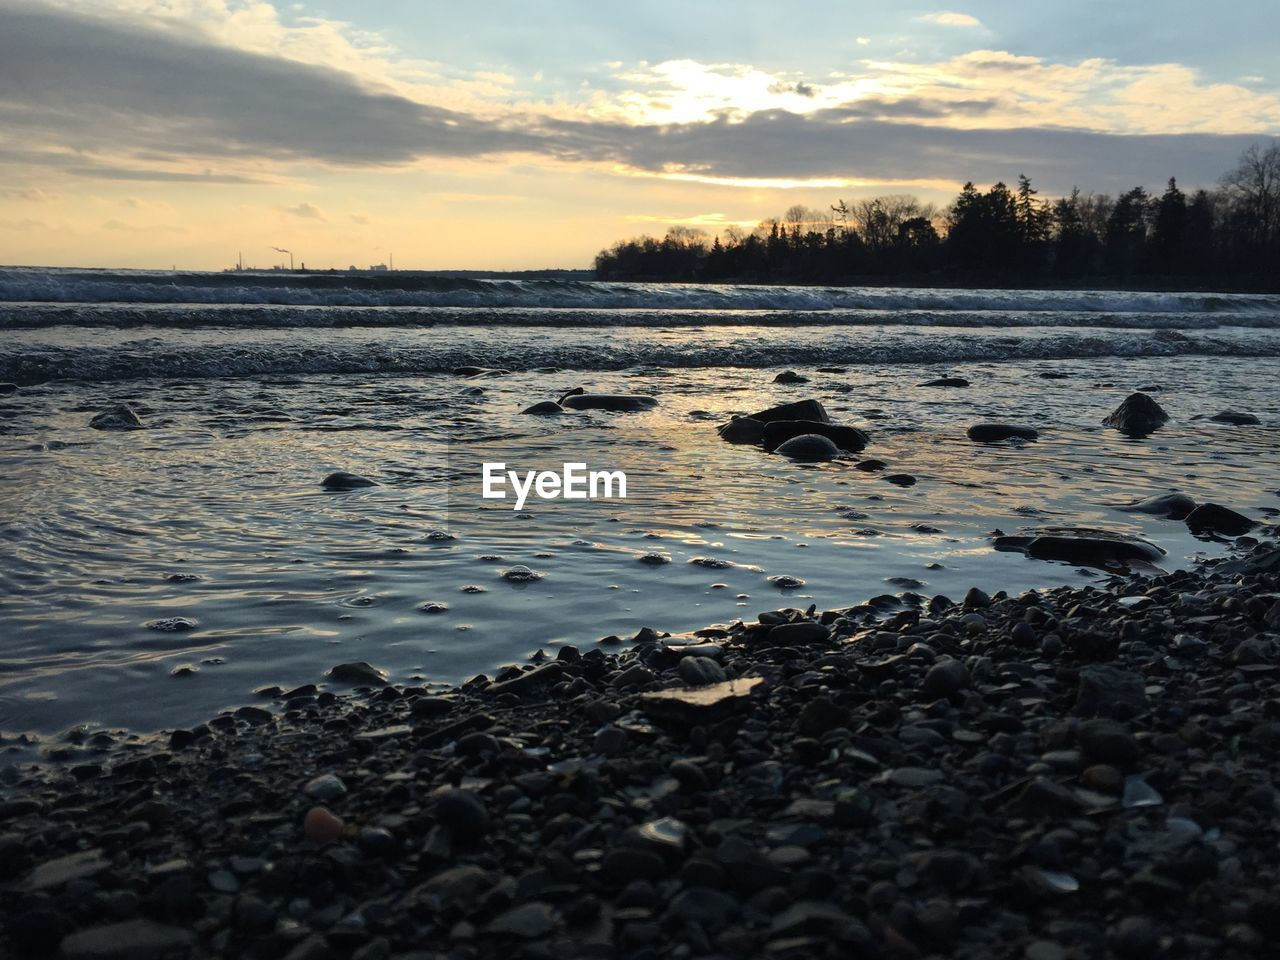 Scenic view of rocky shore against sky at sunset